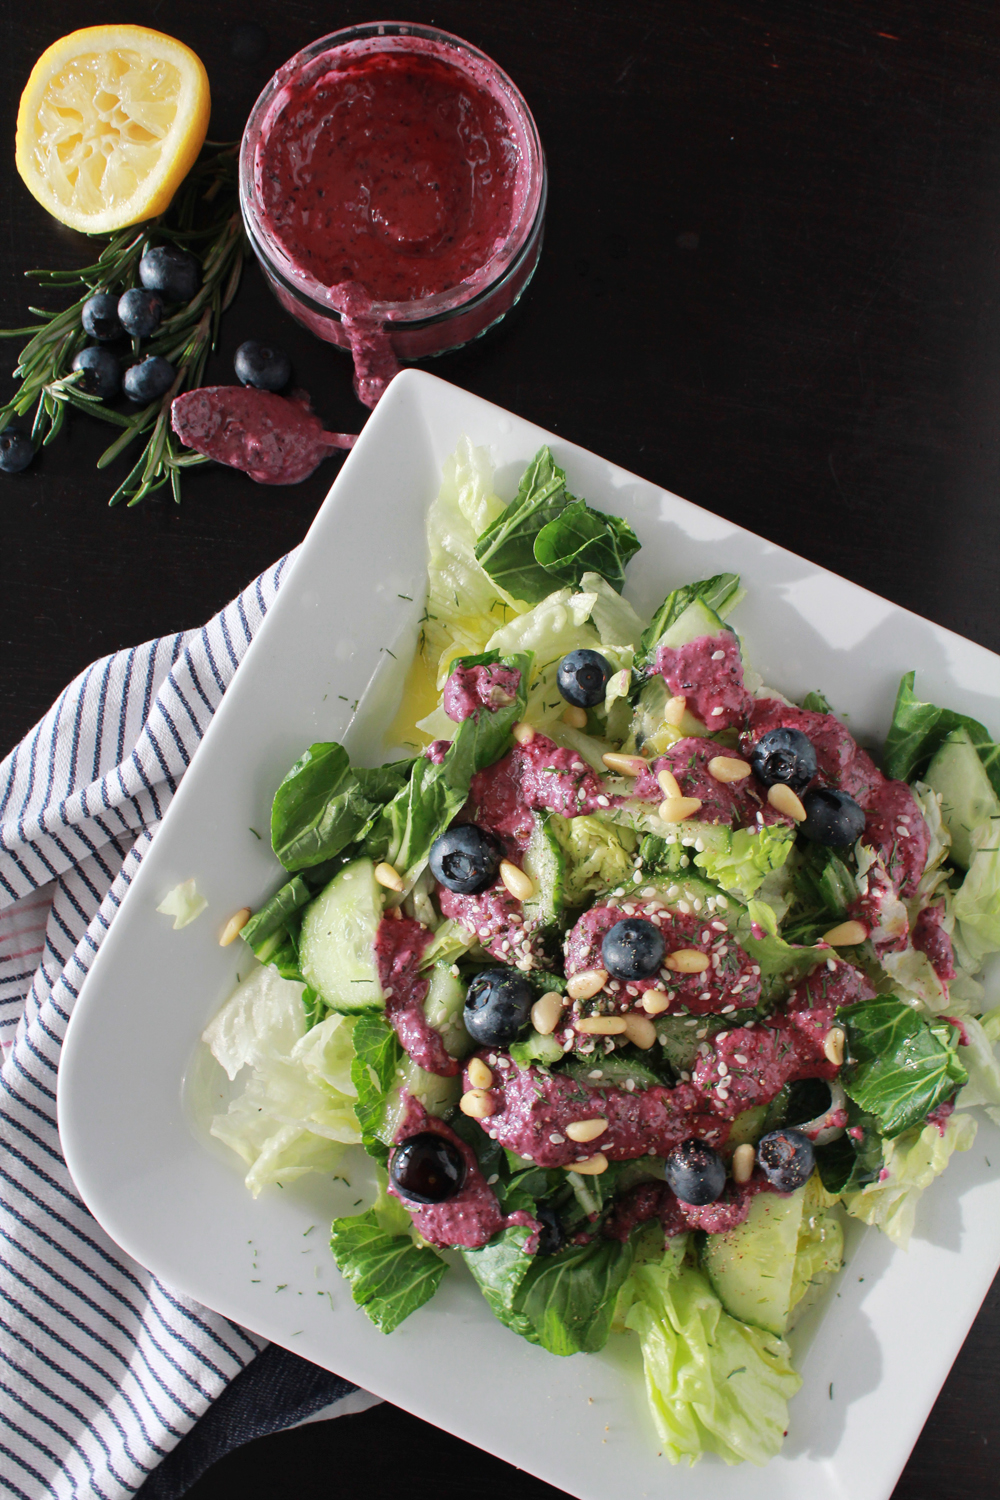 Salad dressing with blueberries, dijon mustard, olive oil & sesam | In Whirl of Inspiration